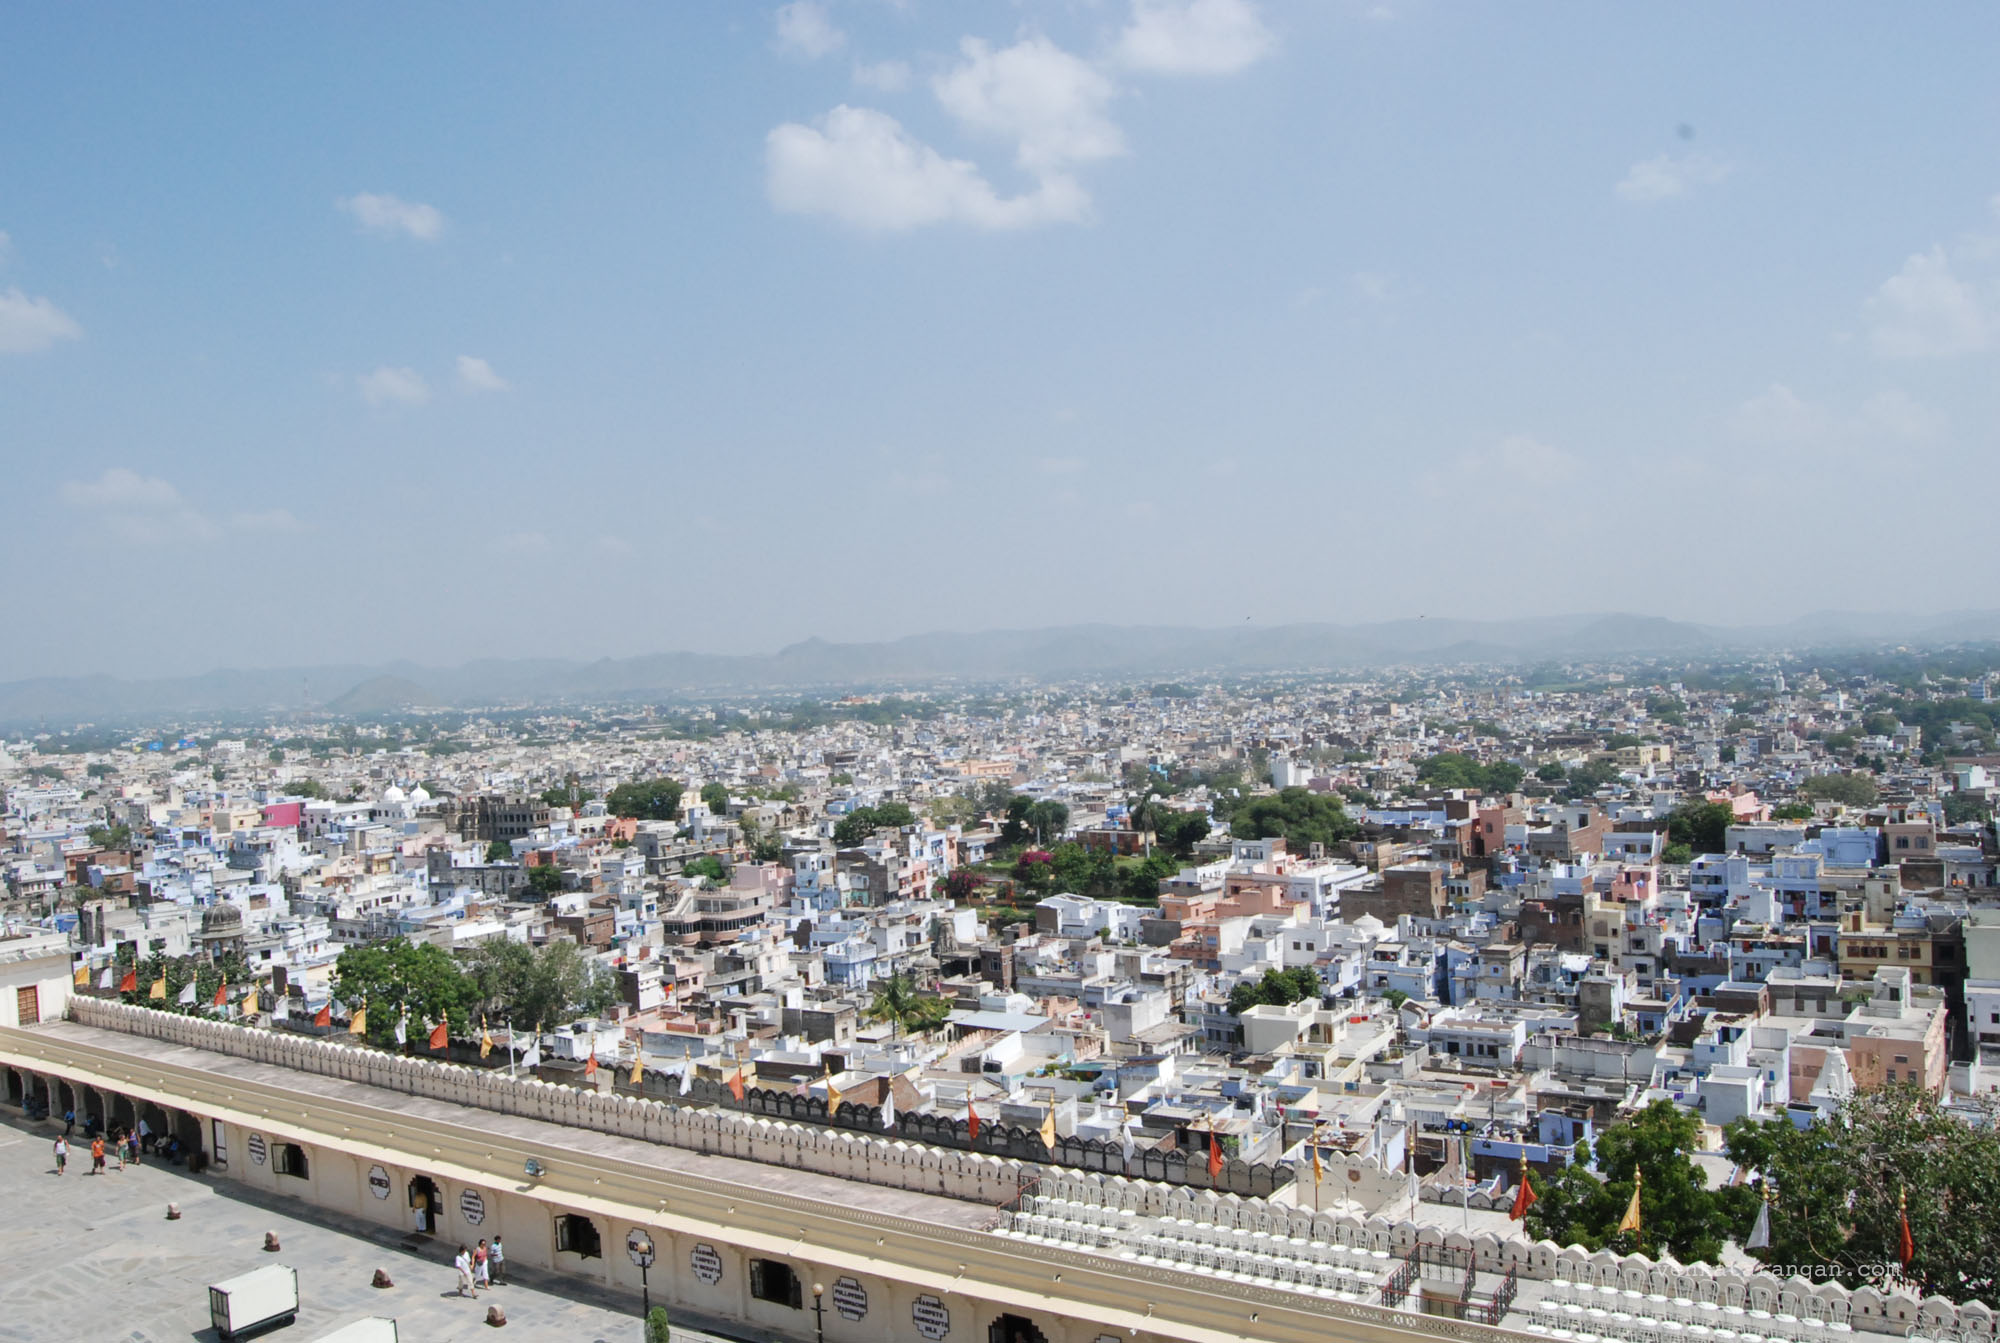 View of the city from Udaipur City Palace